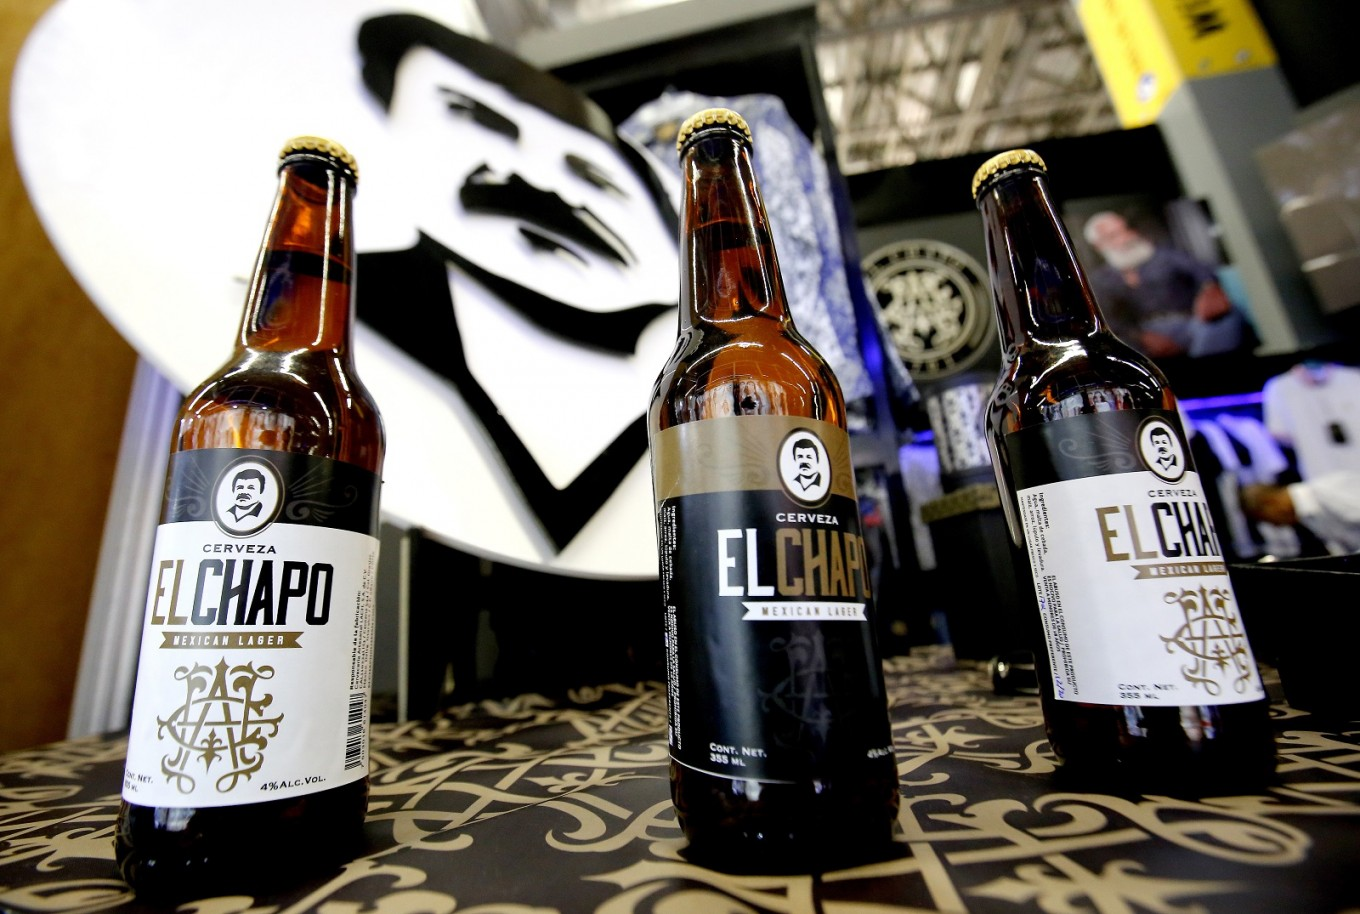 Mexico gets 'Chapo' beer